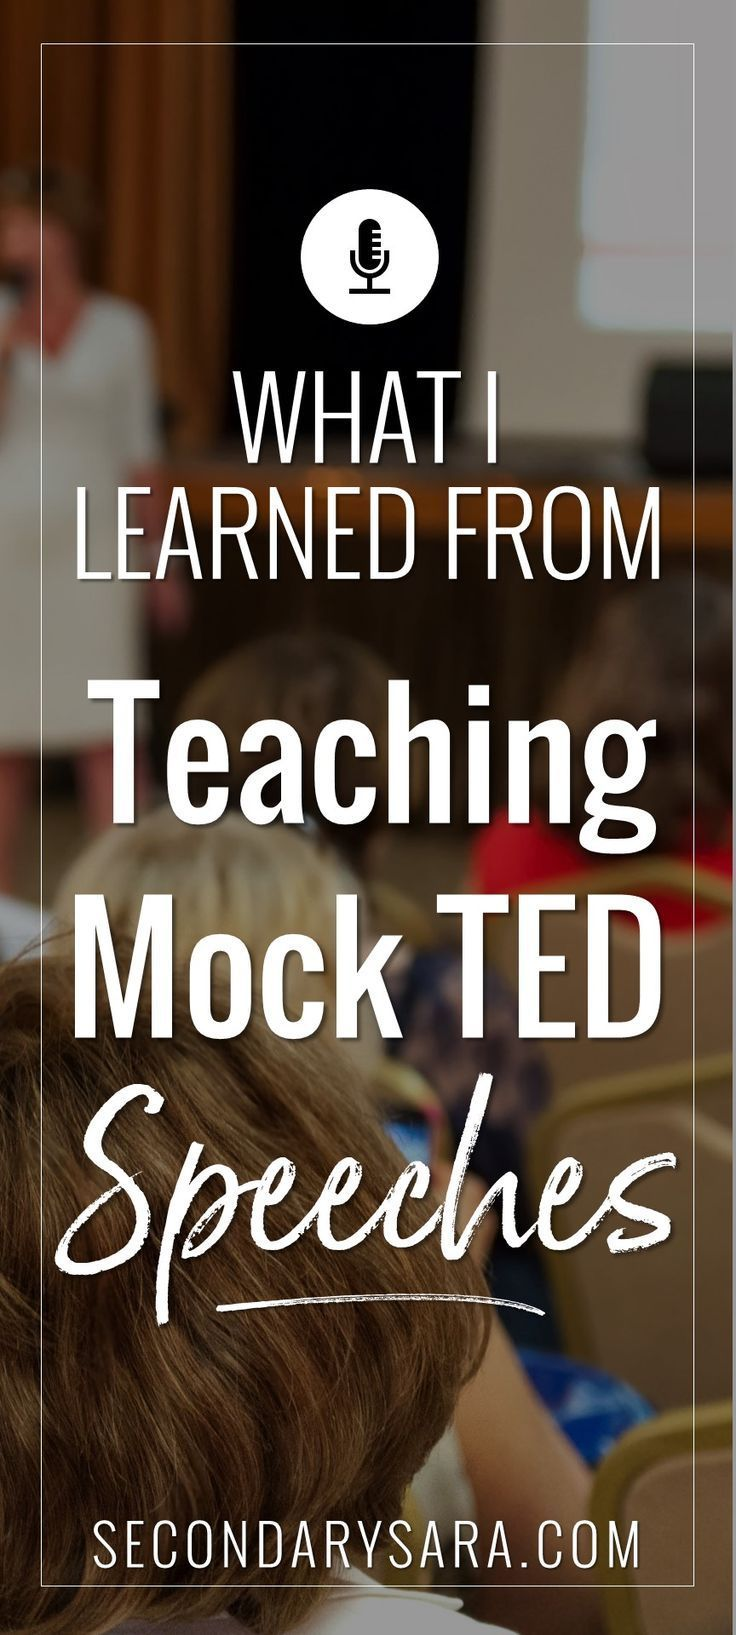 What i learned from teaching tedstyle speeches post 2